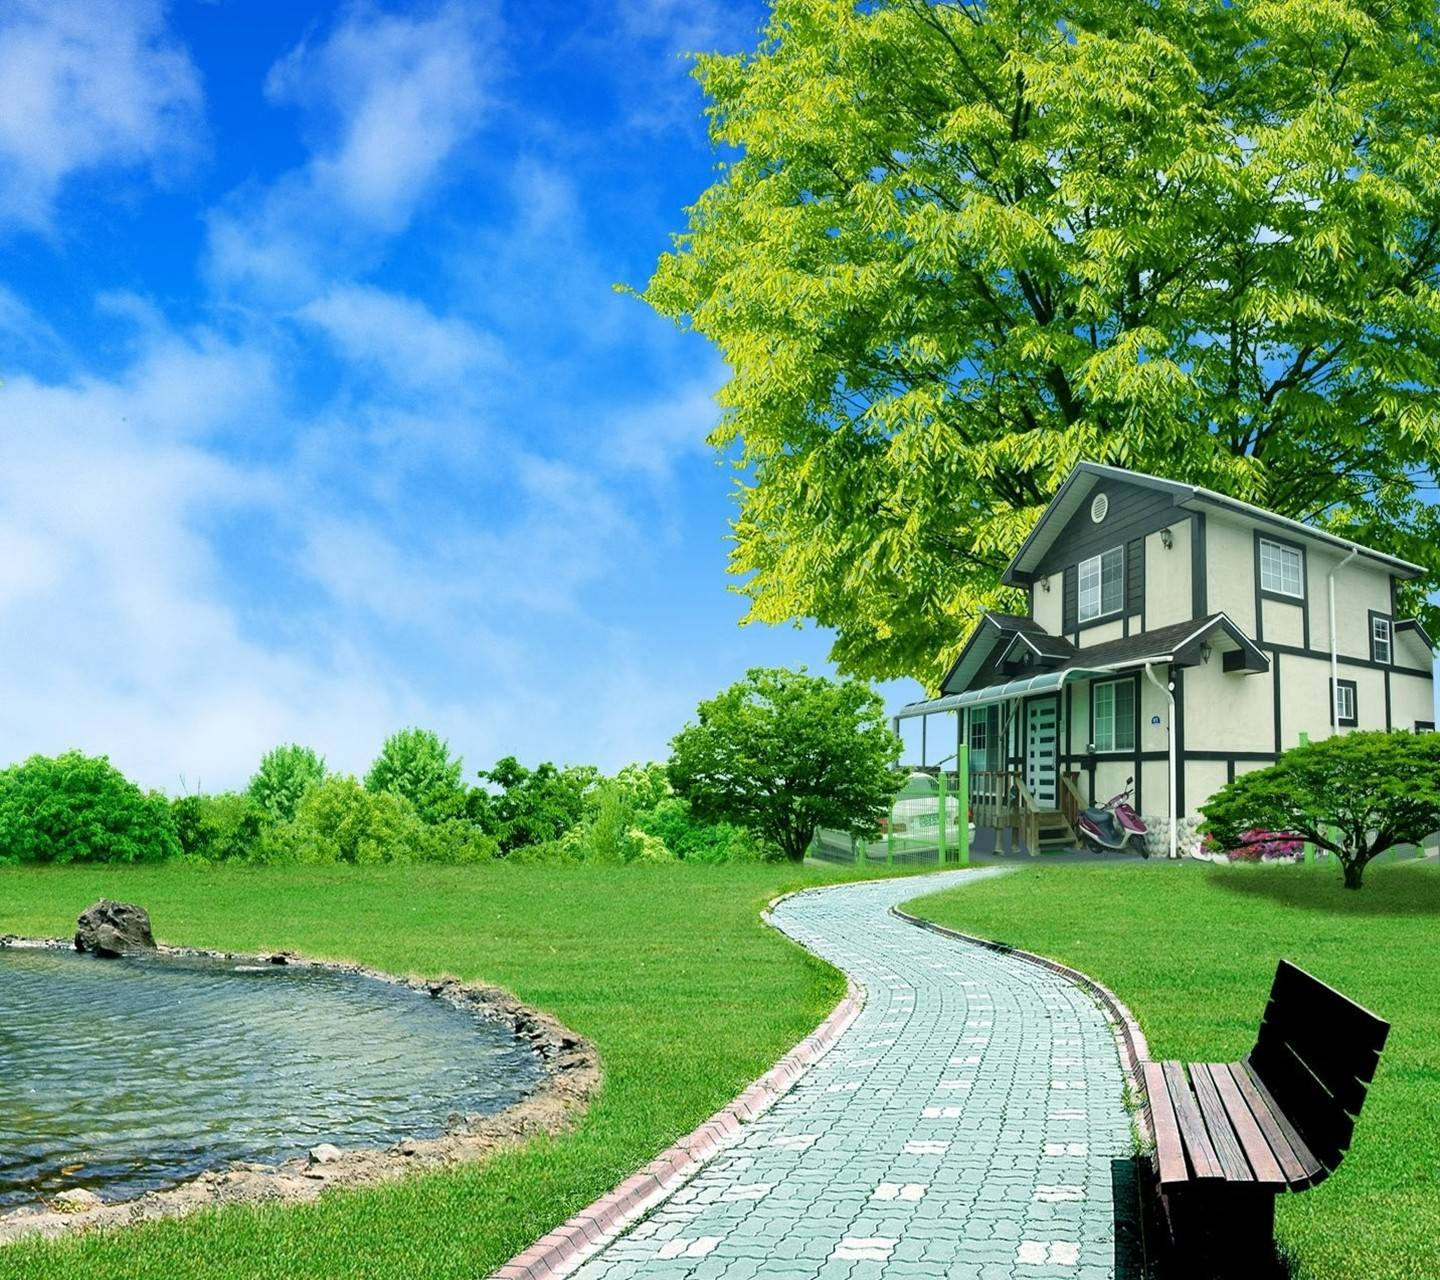 NICE HOUSE IN NATURA